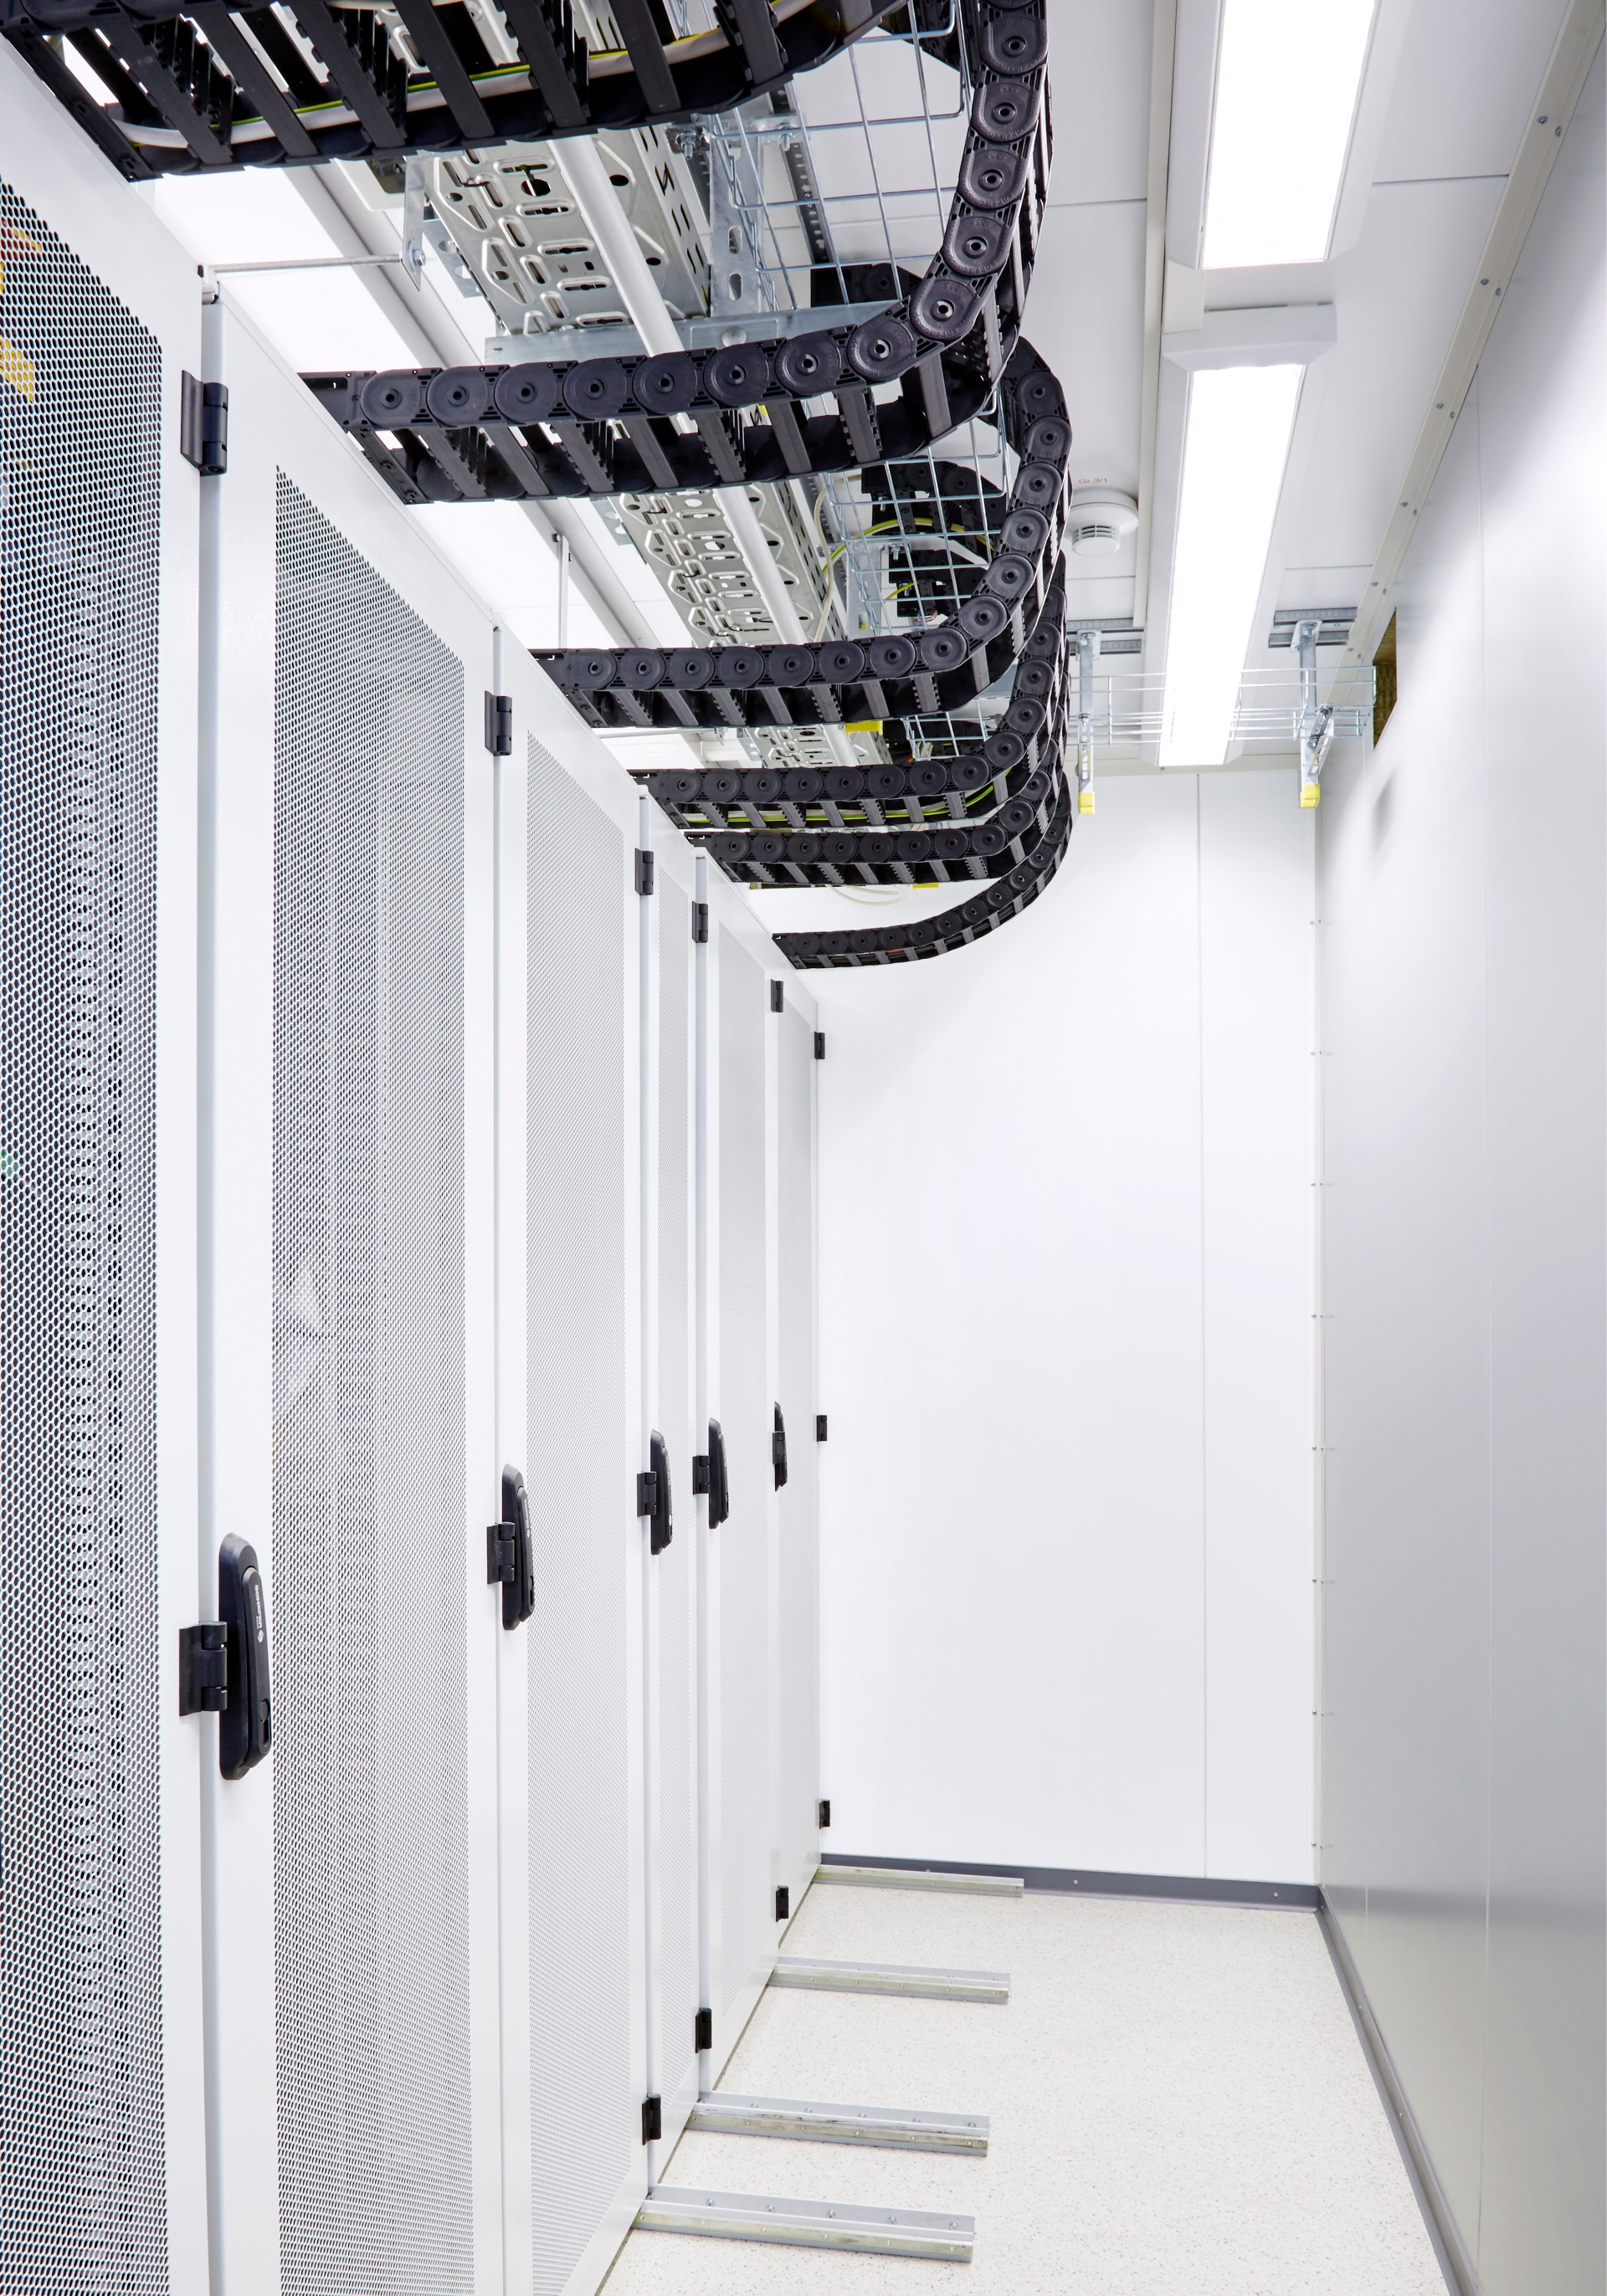 Dc Itcontainer Mobile Modular Indestructibly Good Data Center Design Eg Power Engineering 4